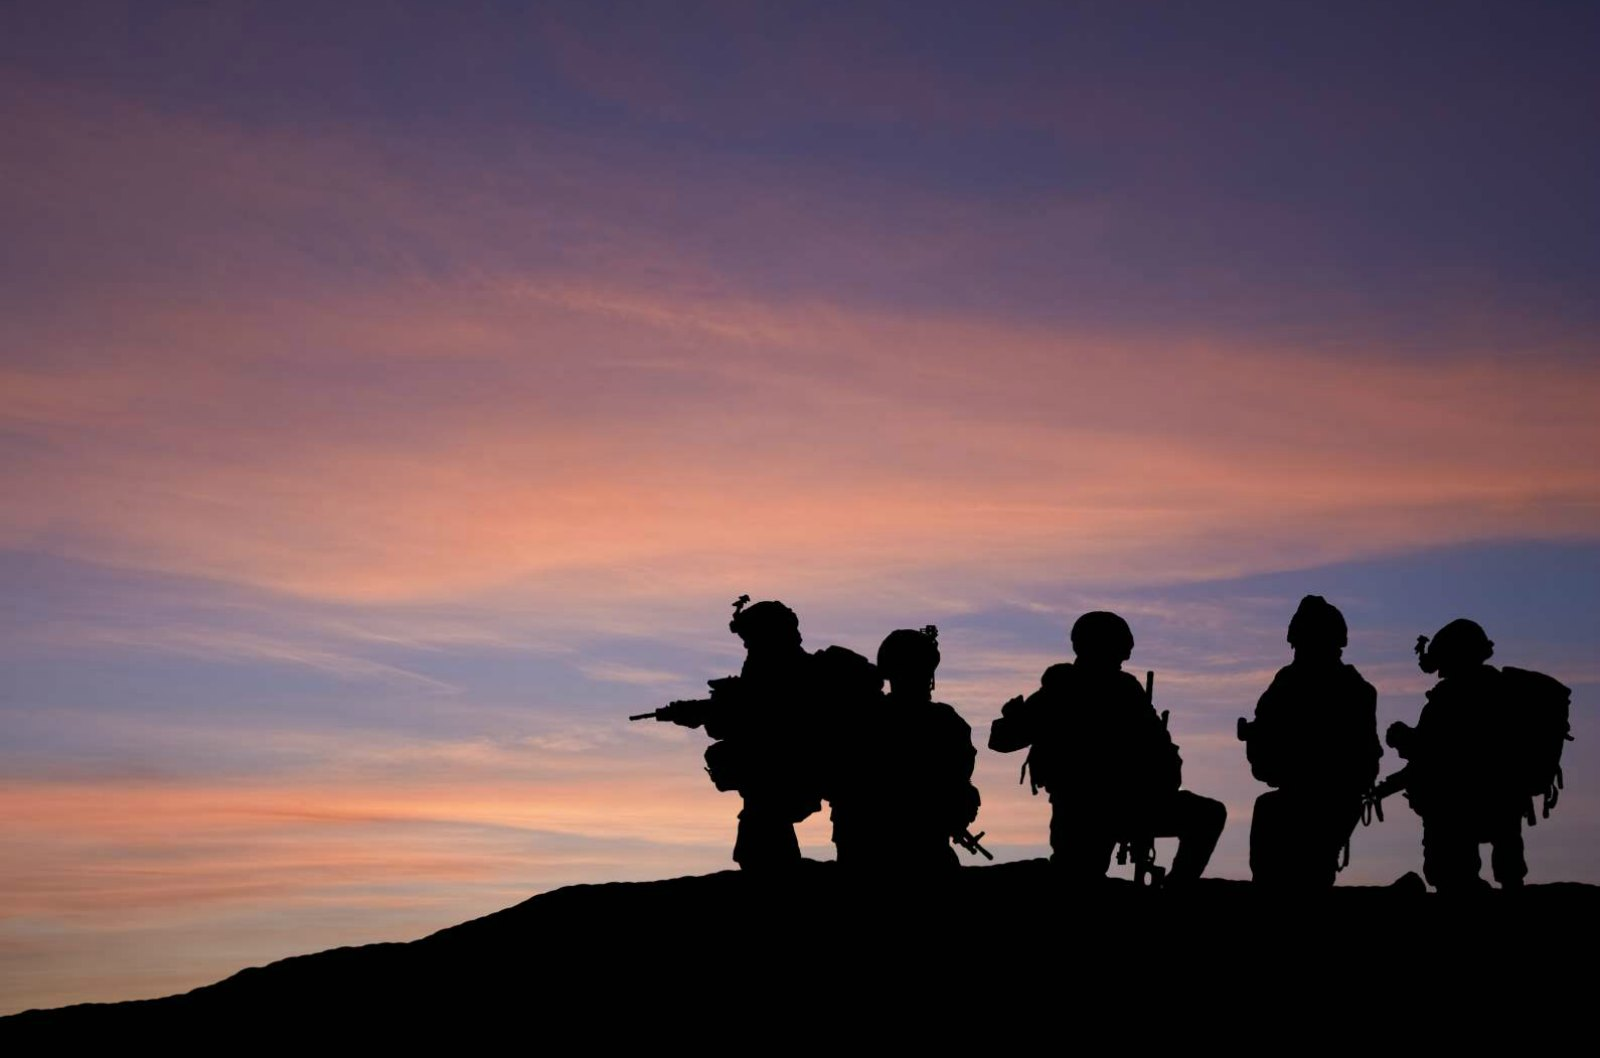 The MBPS System Protects Soldiers While They Sleep